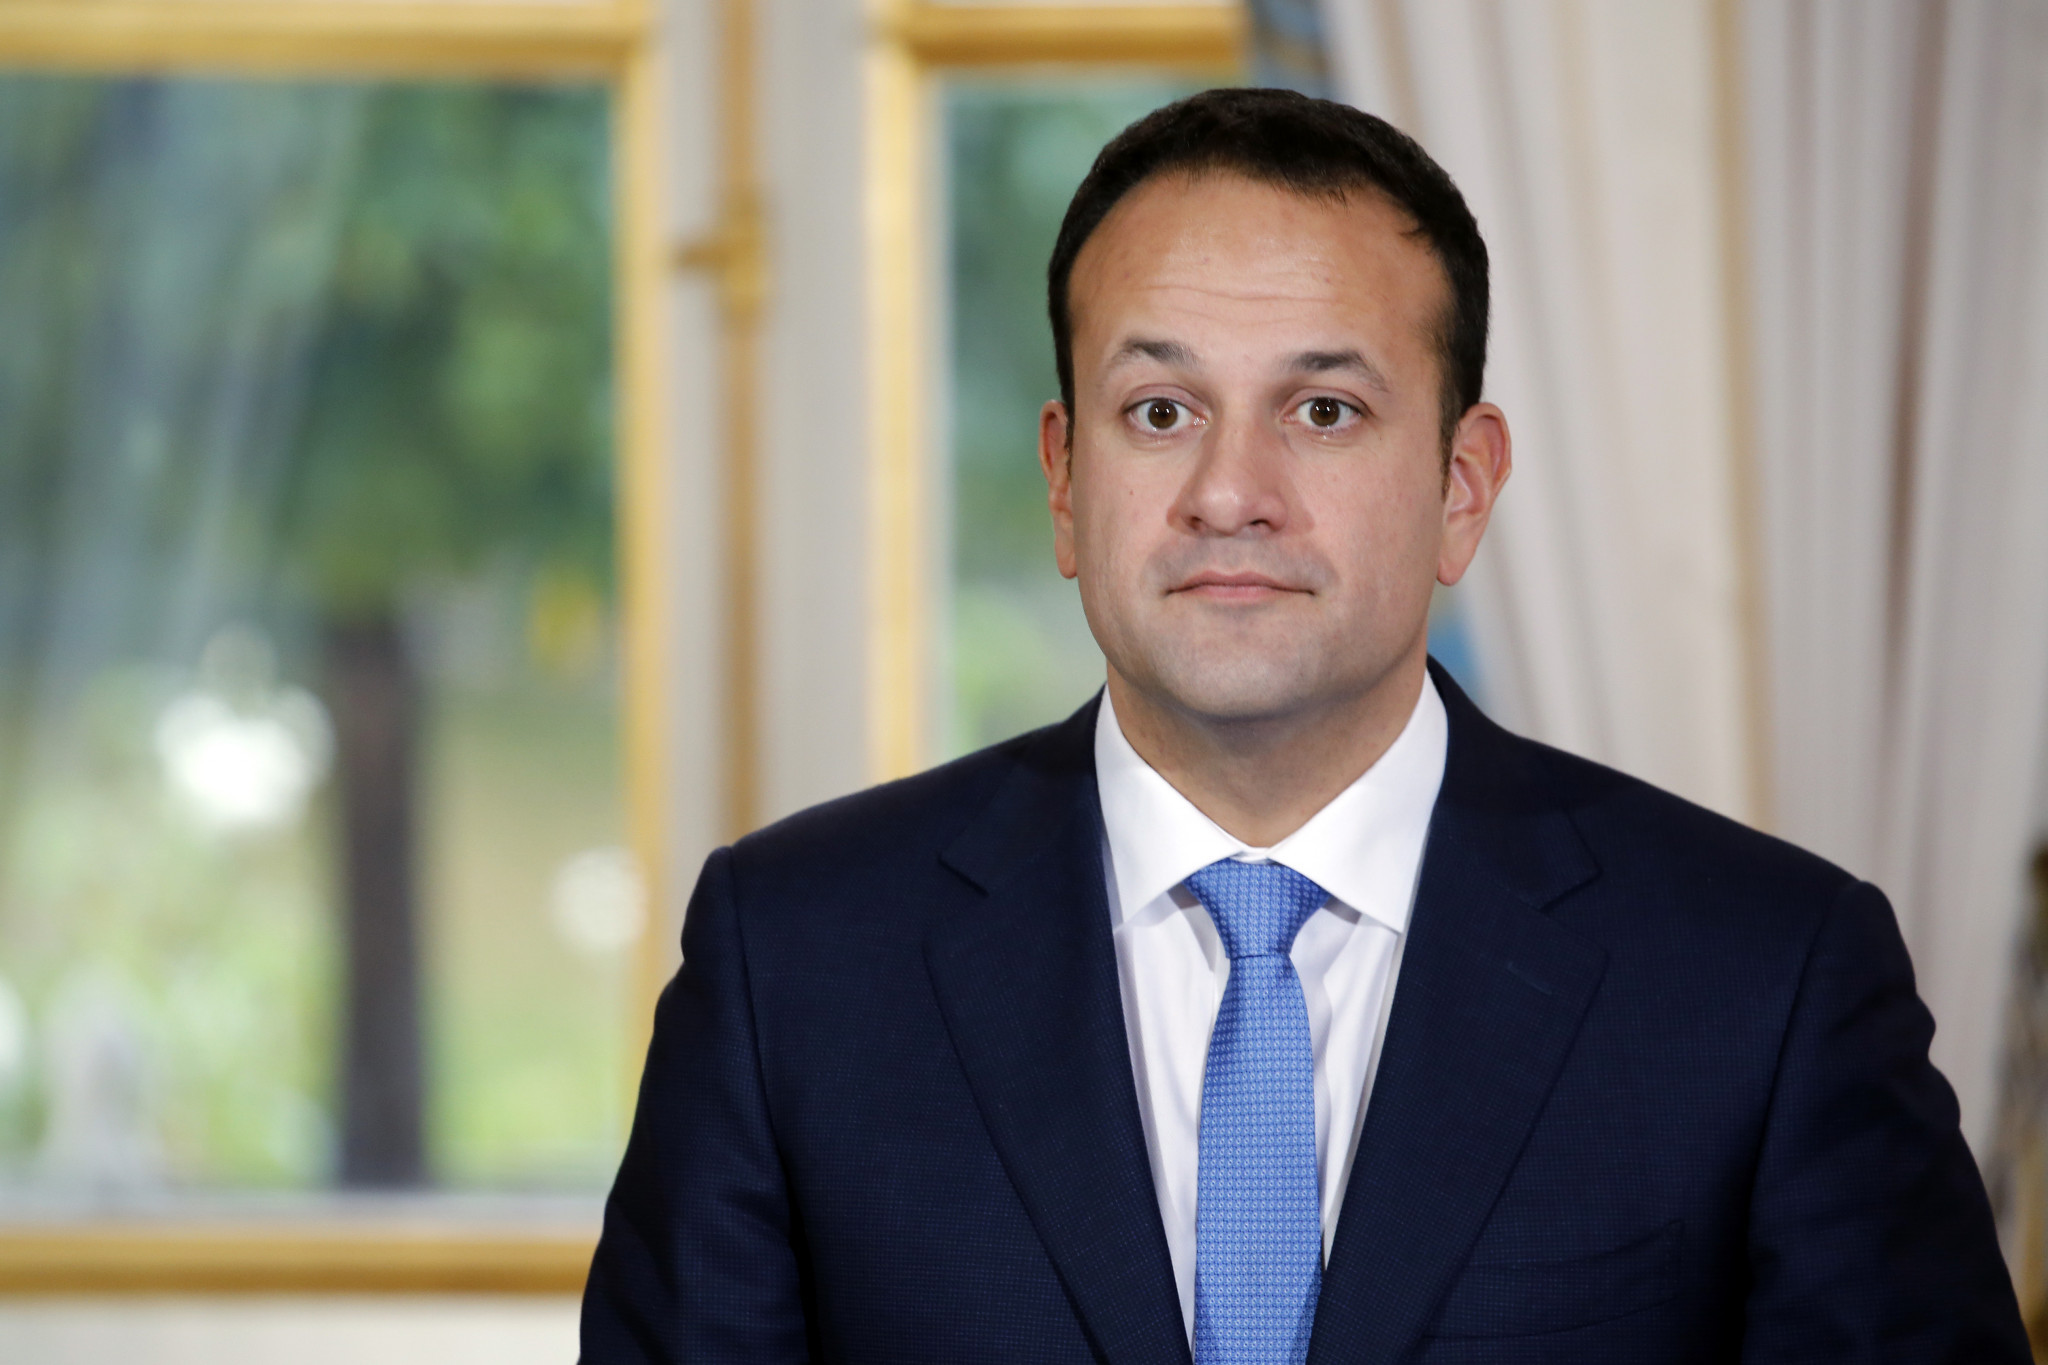 Irish Taoiseach enters fray as 2023 Rugby World Cup contest heads for lively conclusion